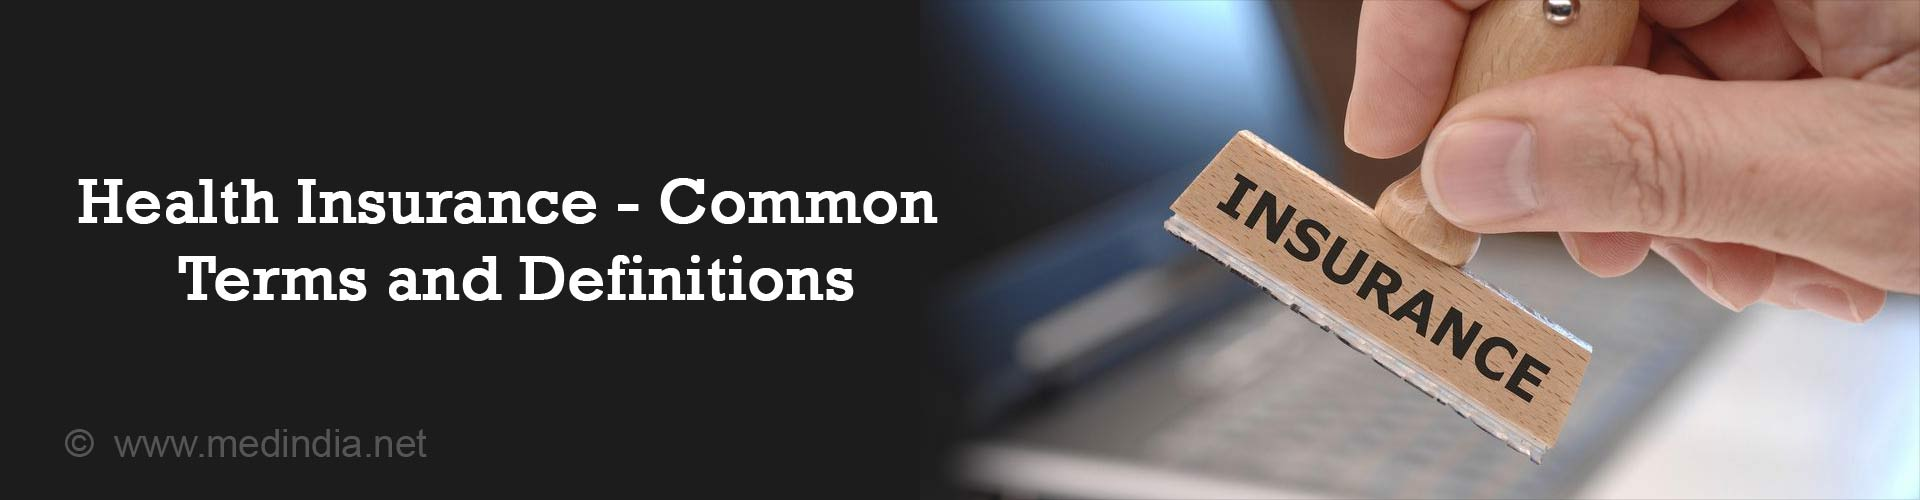 Health Insurance - Common Terms and Definitions